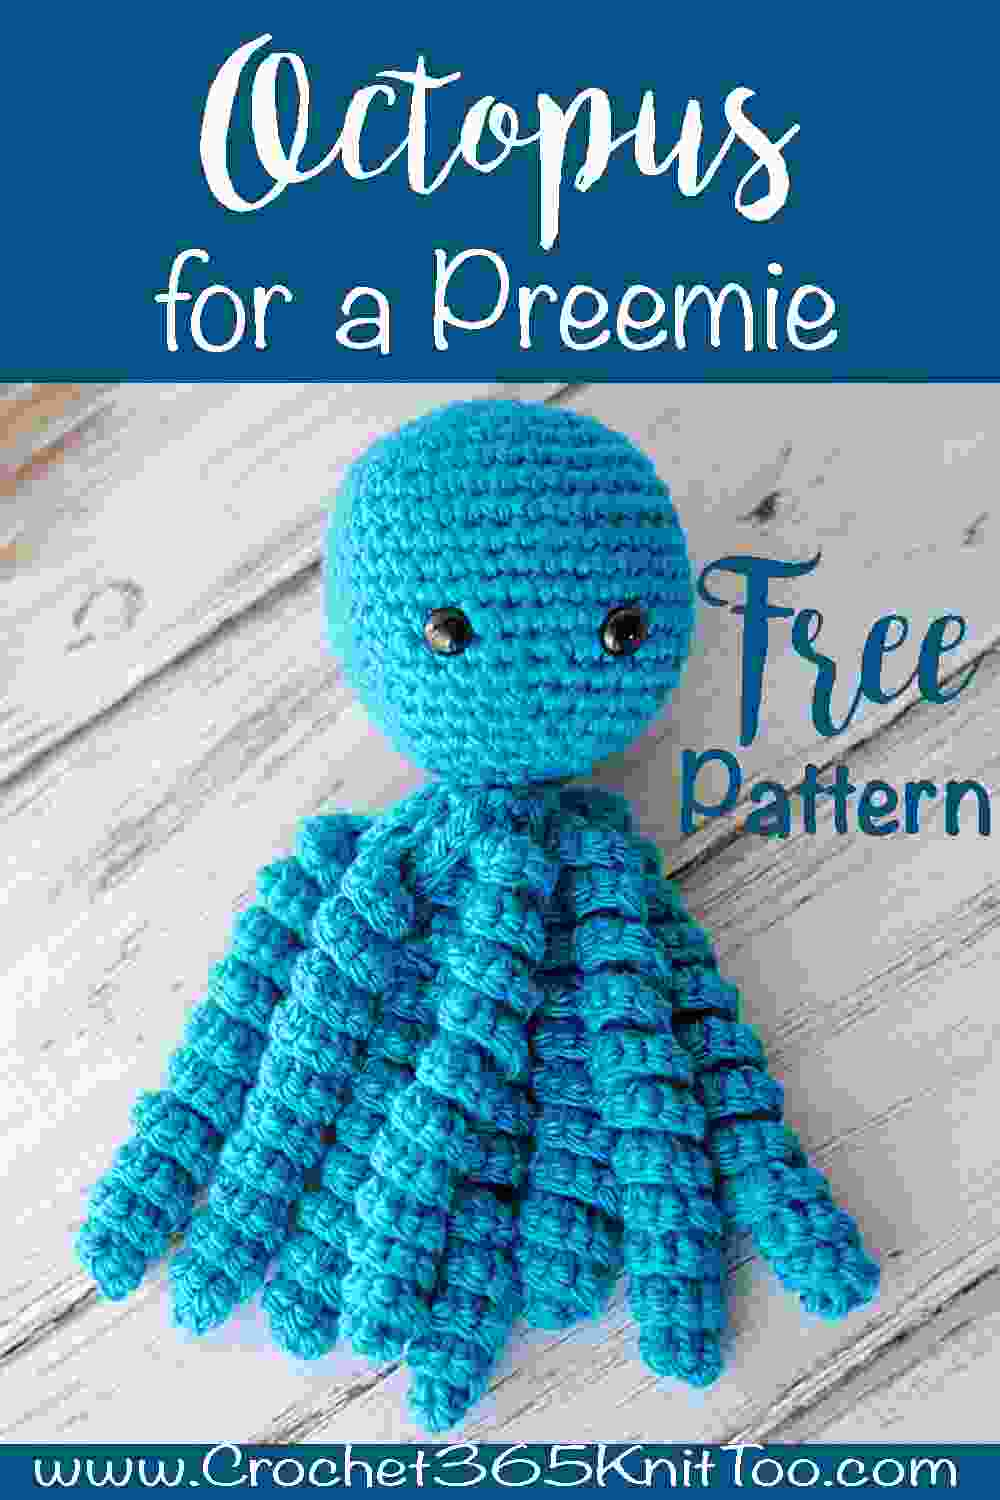 Crochet An Octopus For Preemies - Crochet 365 Knit Too